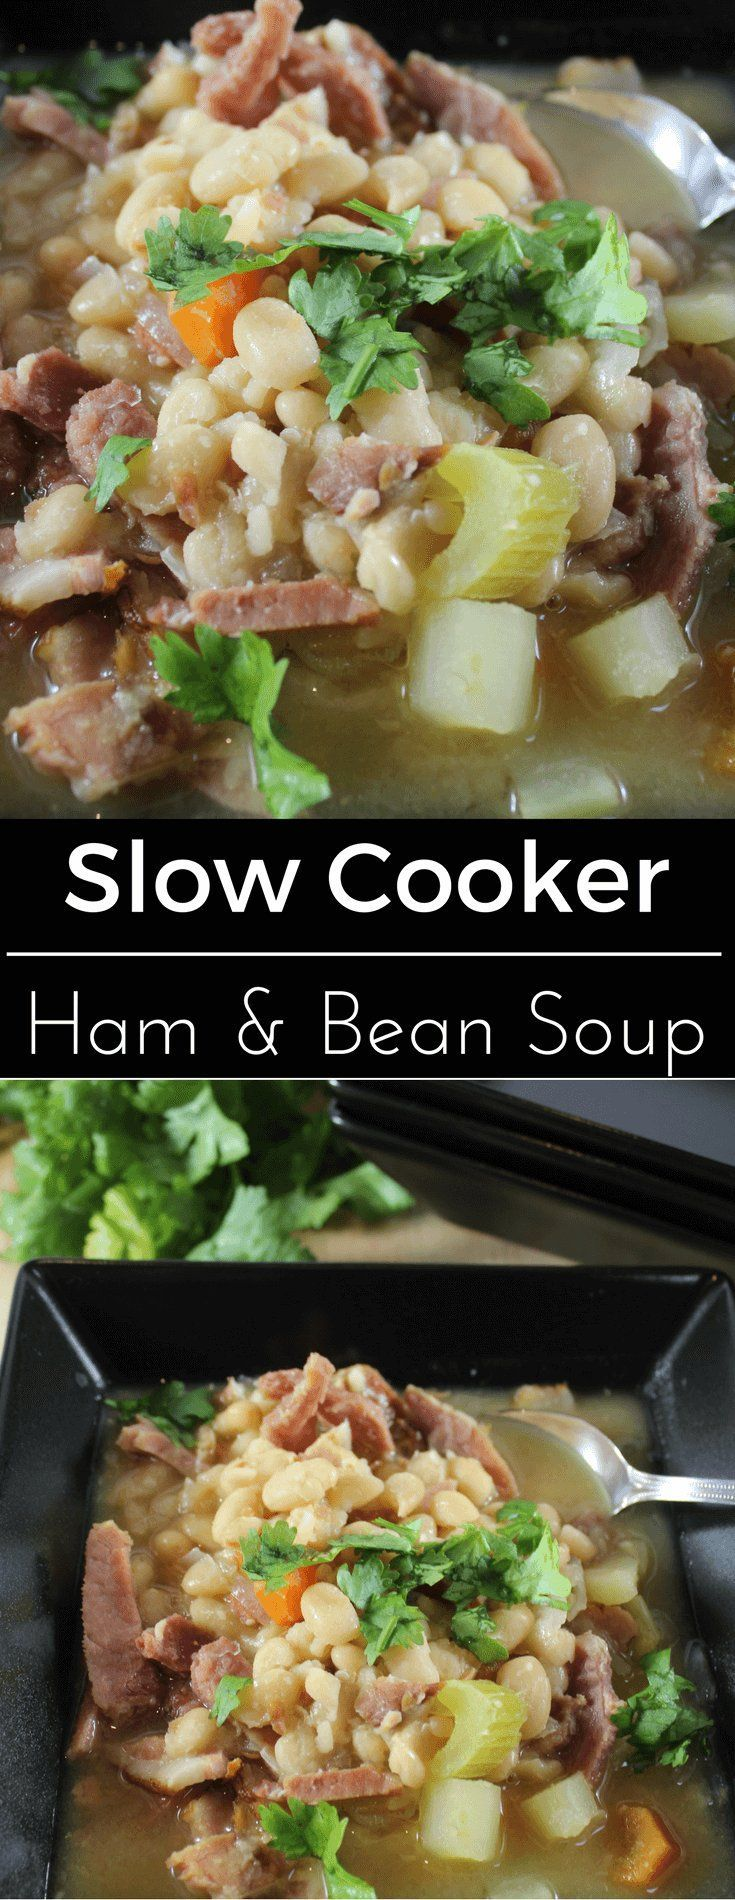 Slow Cooker Ham and Bean Soup with leftover ham